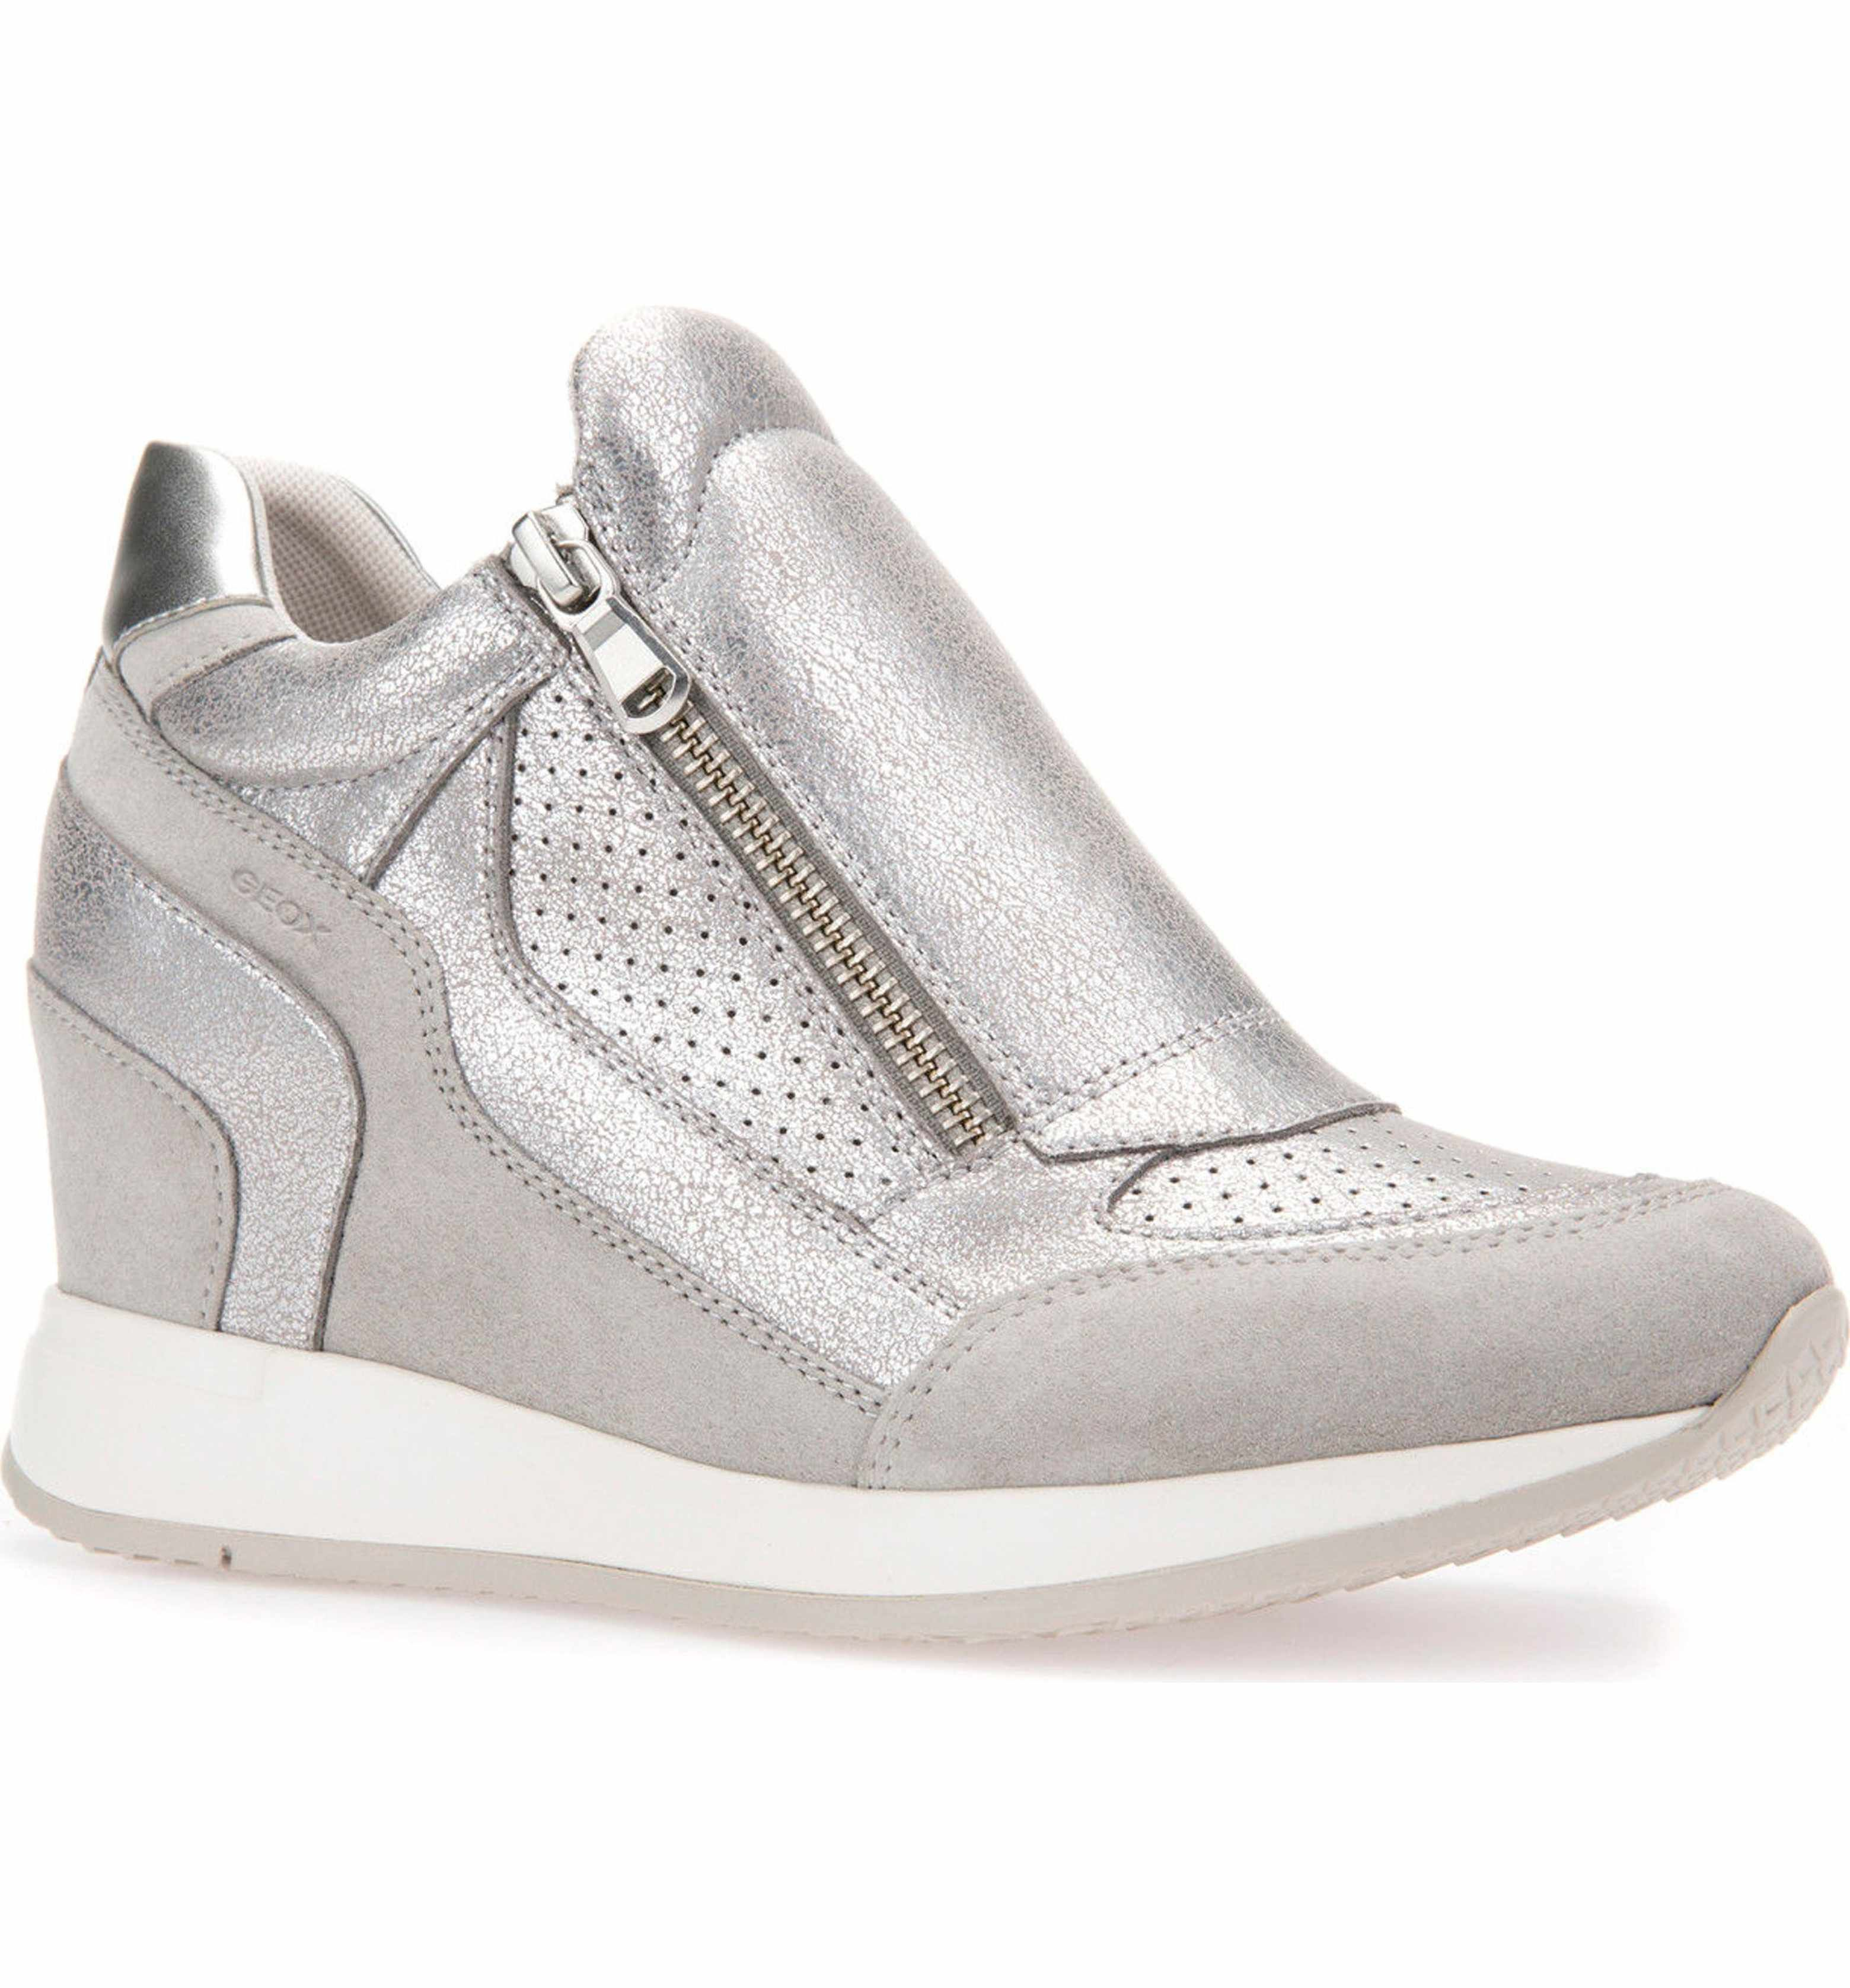 ed7be8c99e6 Main Image - Geox Nydame Wedge Sneaker (Women) | My Style | Sneakers, Wedges,  Shoes